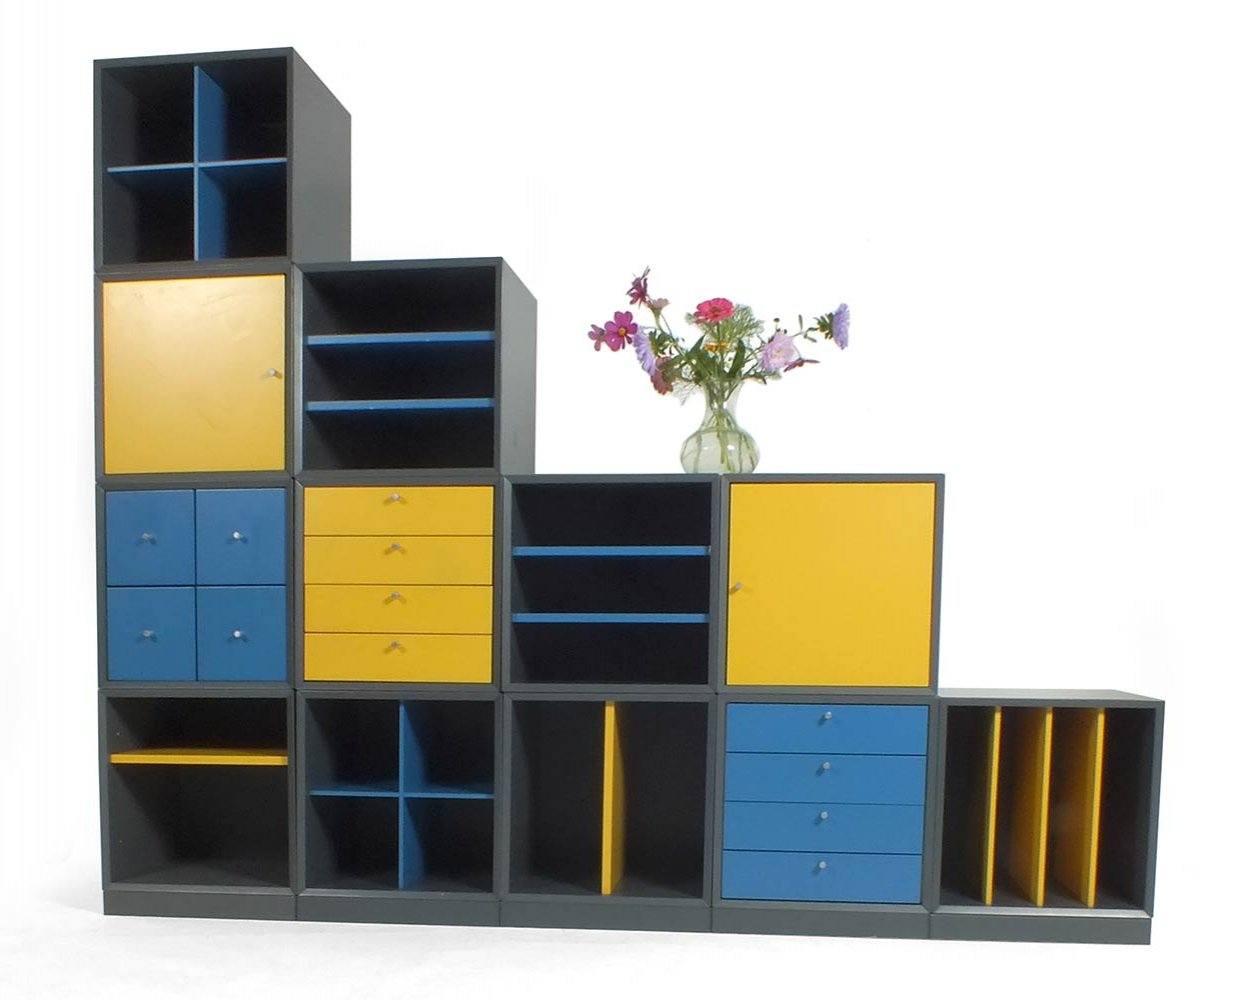 Yellow & blue Q-bus cabinet by Cees Braakman for Pastoe, 1960s